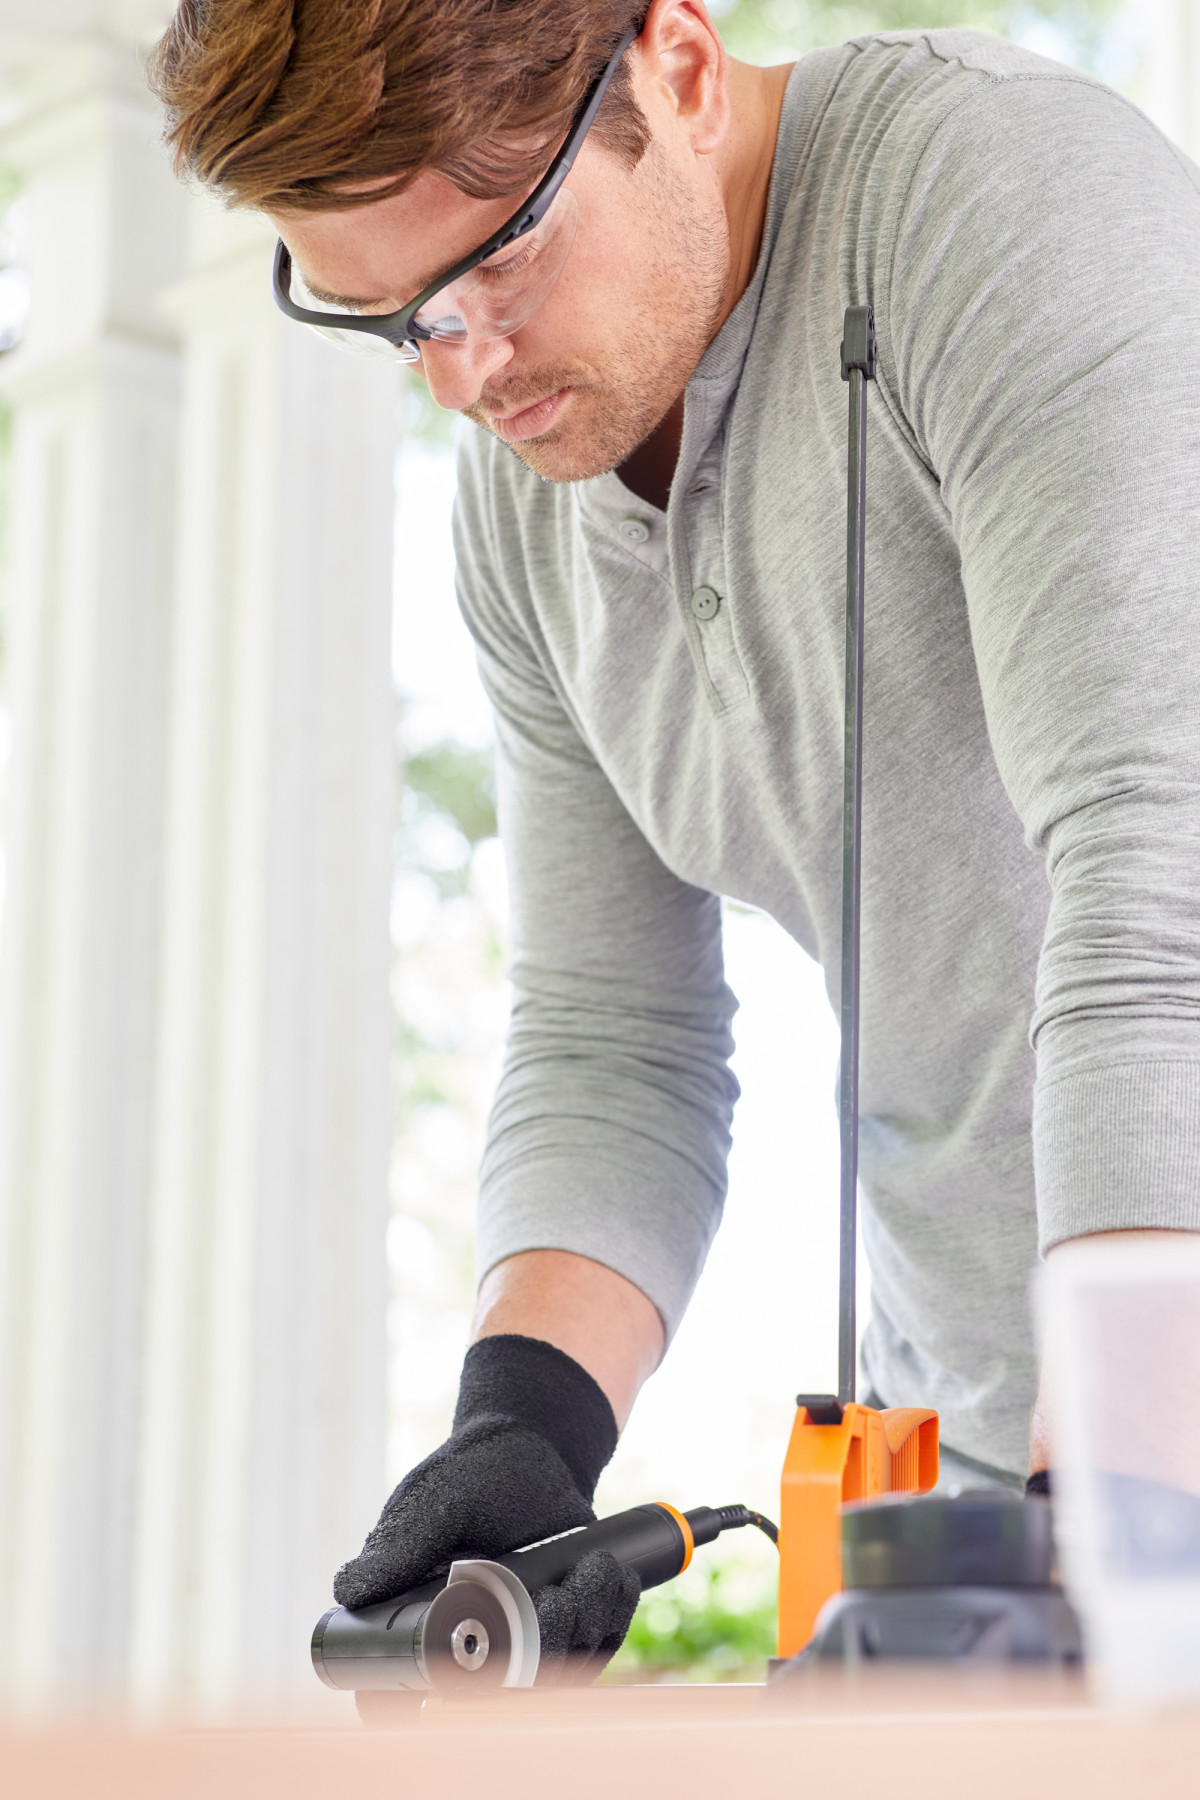 Lifestyle photography of man in gray shirt and safety goggles using an angle grinder by WORX